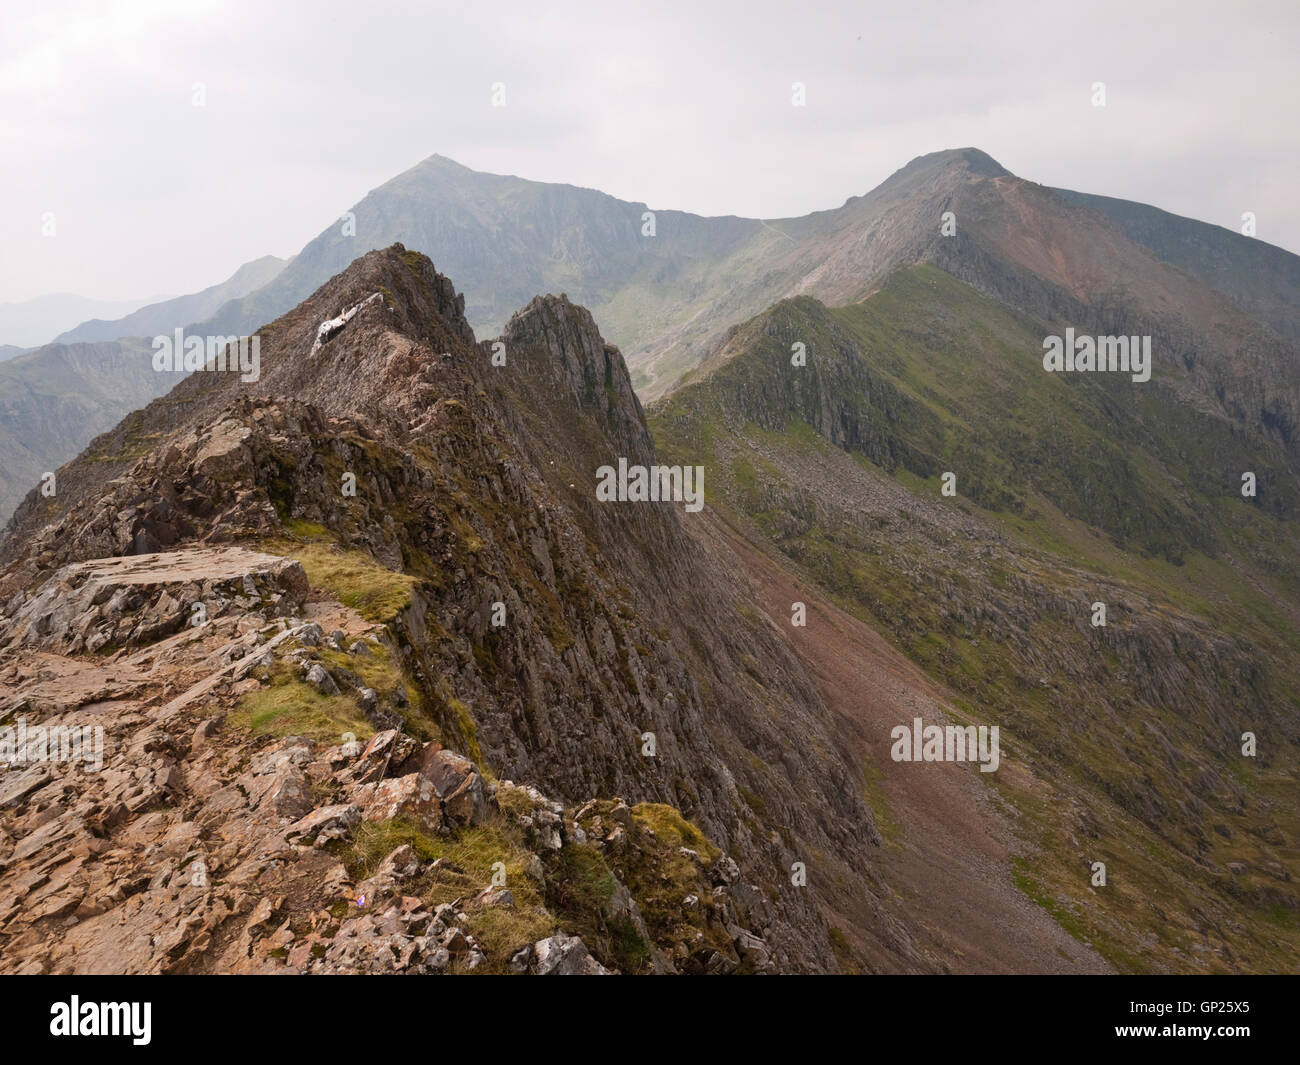 The Crib Goch arete leading to Carnedd Ugain and Yr Wyddfa on the Snowdon Horseshoe. - Stock Image